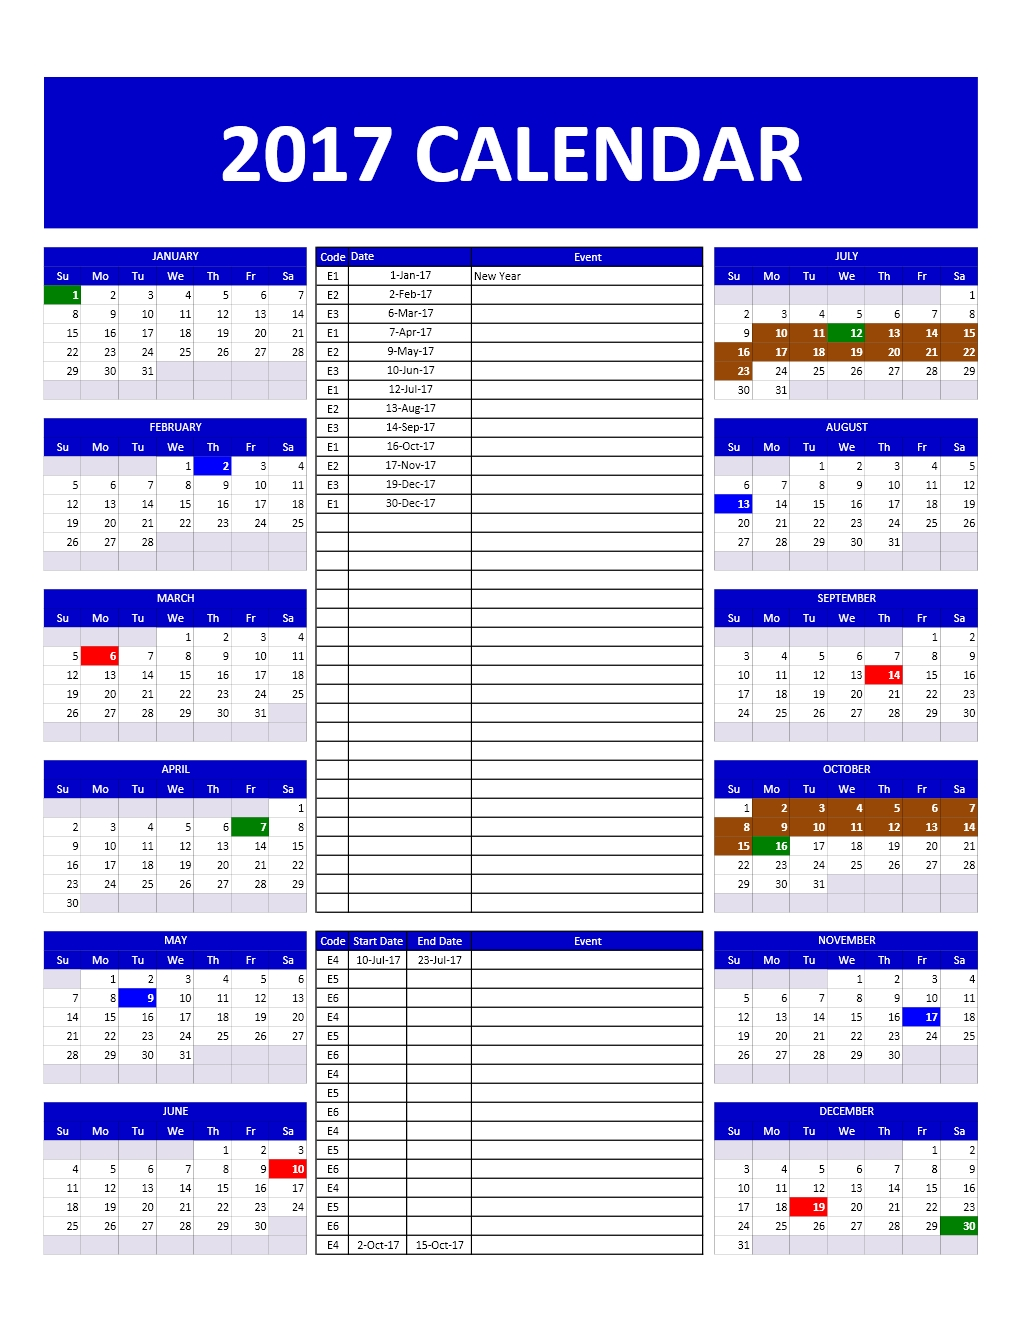 2017 and 2018 calendars excel templates for Annual calendar of events template